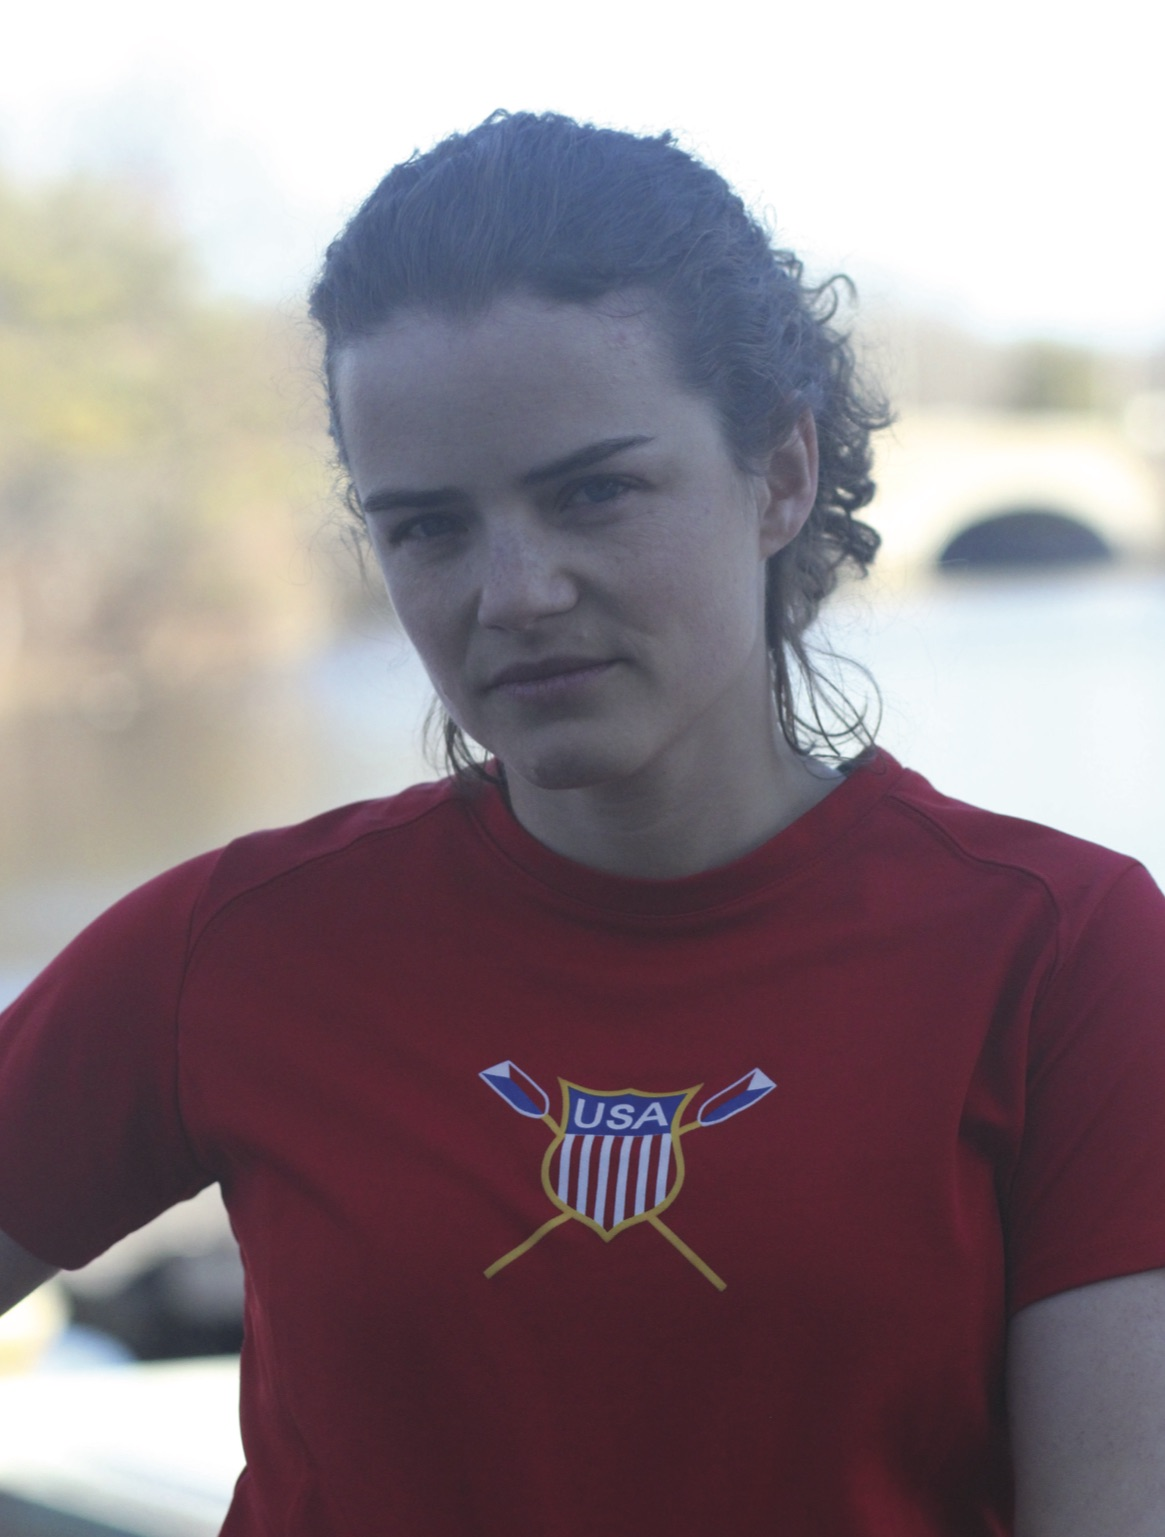 Jenny Sichel, the US National Team LTAMix4+/PR3 Coxswain